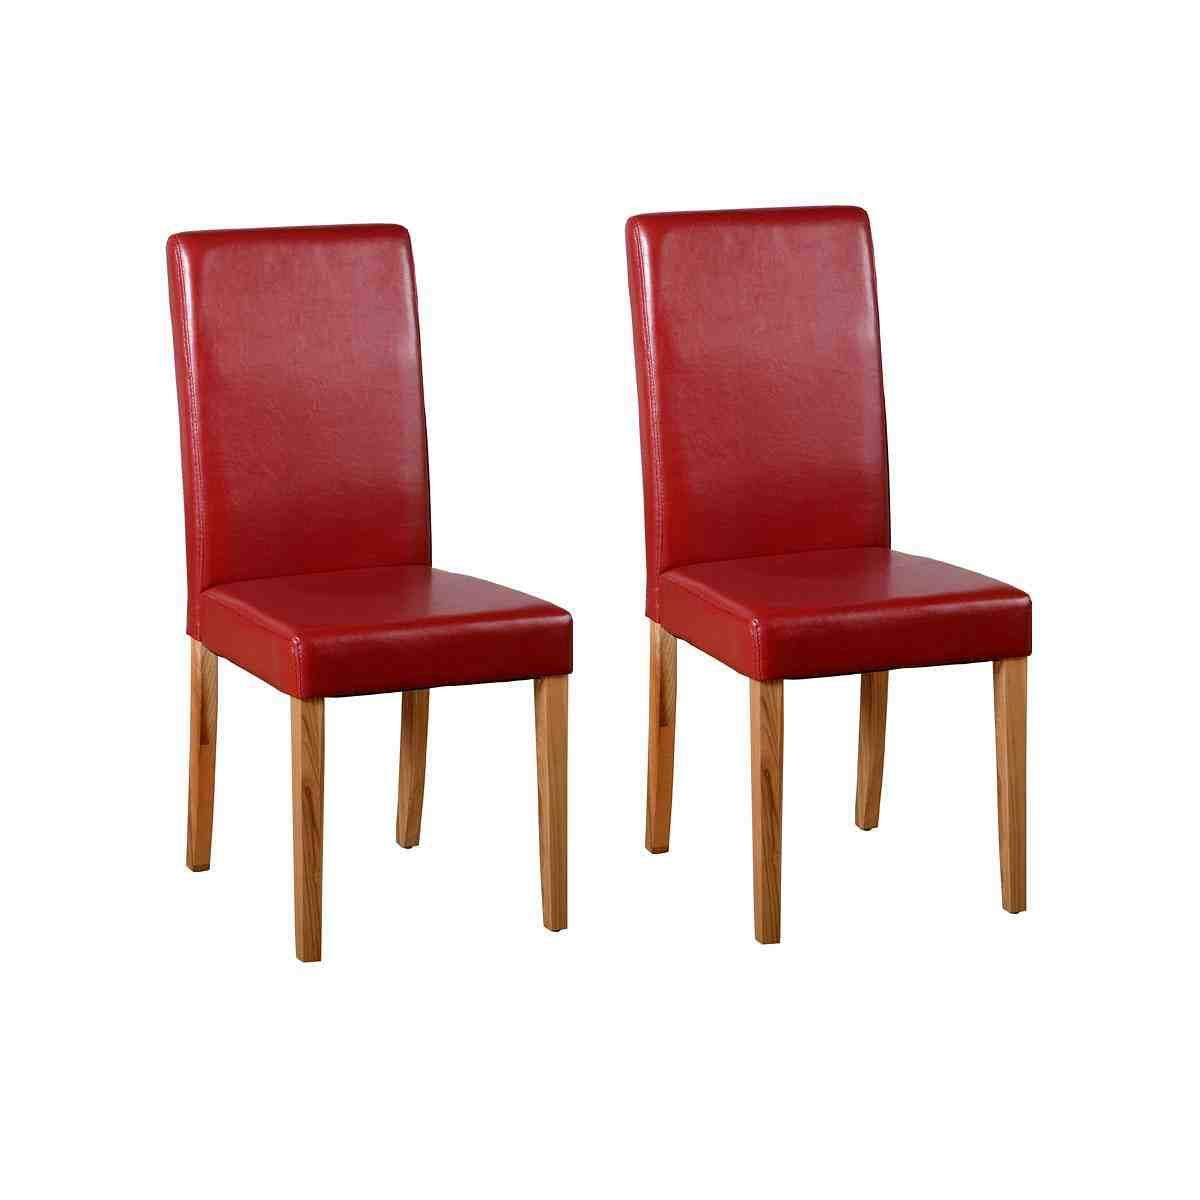 Red leather dining chairs decor ideasdecor ideas for Red dining room chairs